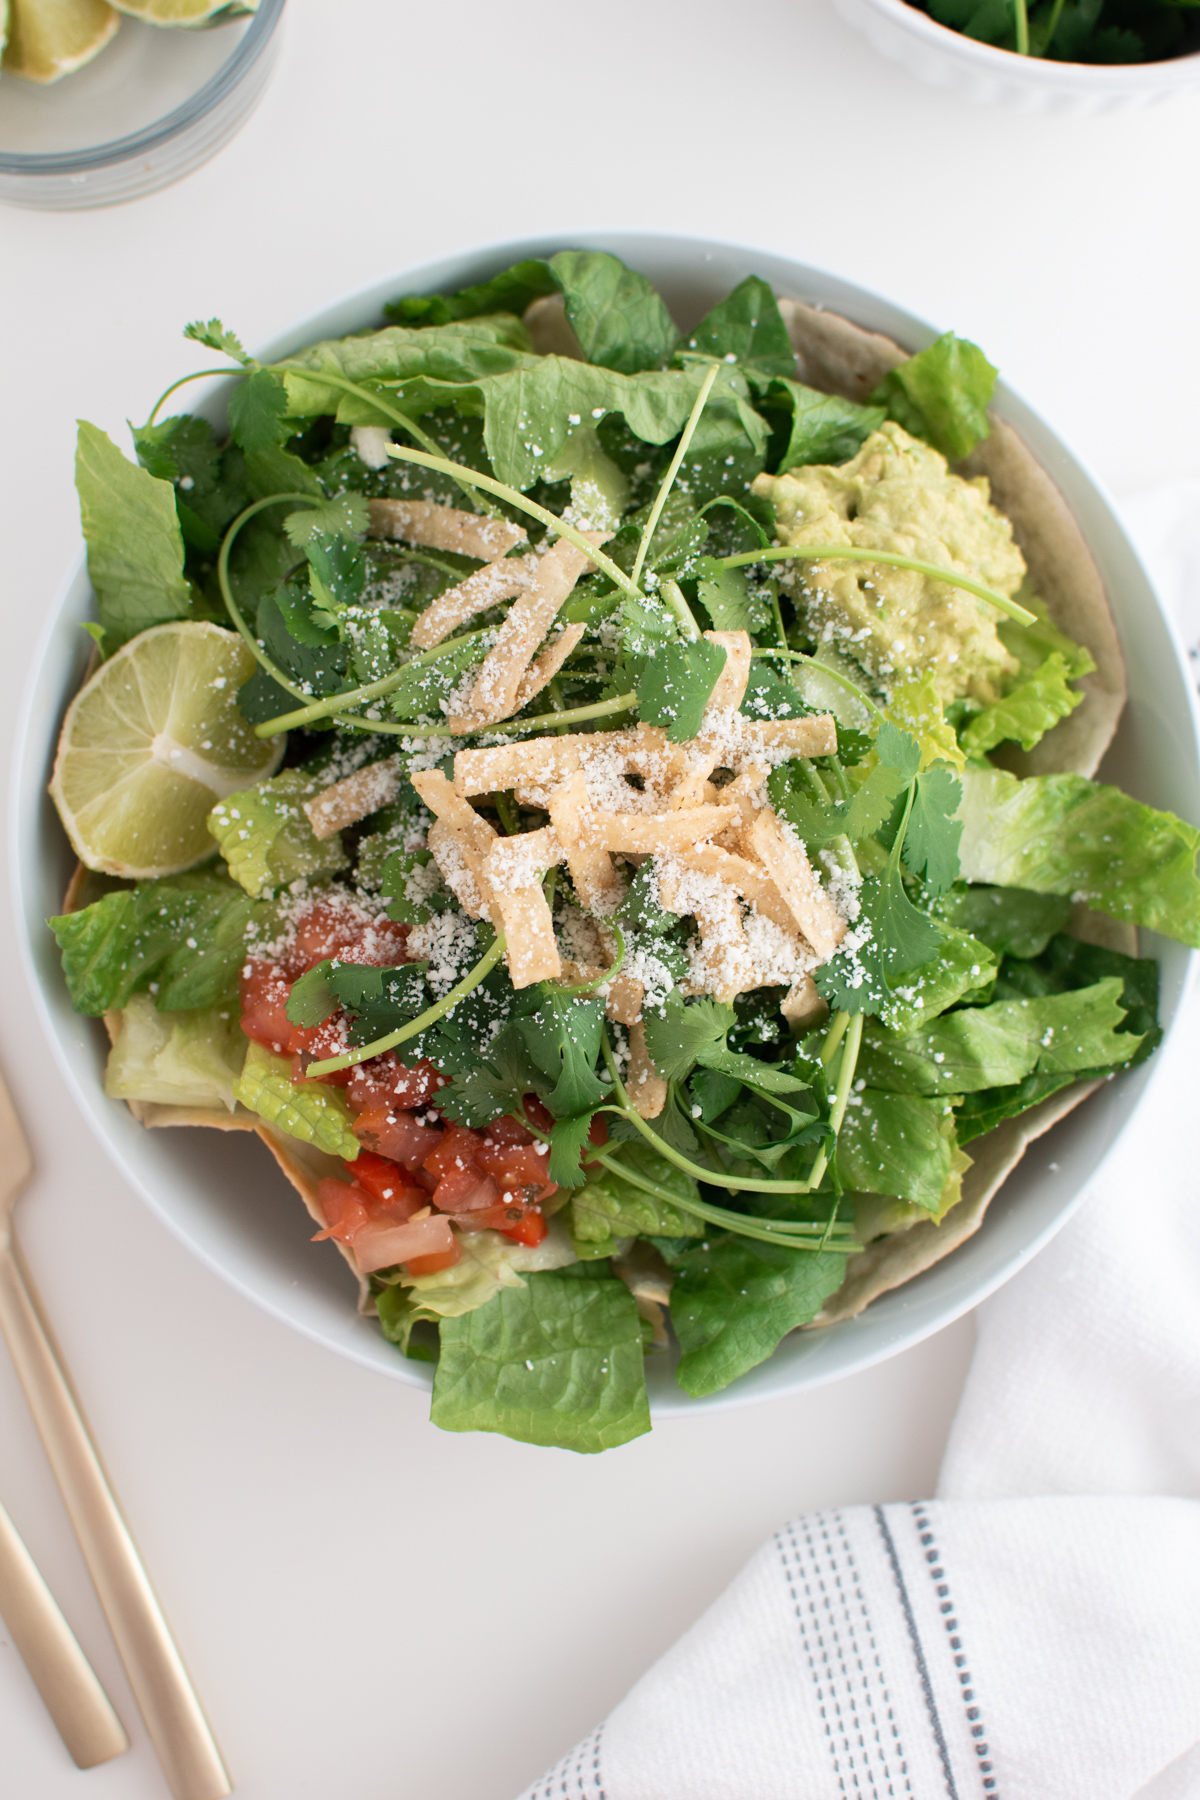 Cafe Rio chicken salad in white bowl with lettuce, tortilla strips, pico, guacamole, and creamy dressing on white table.